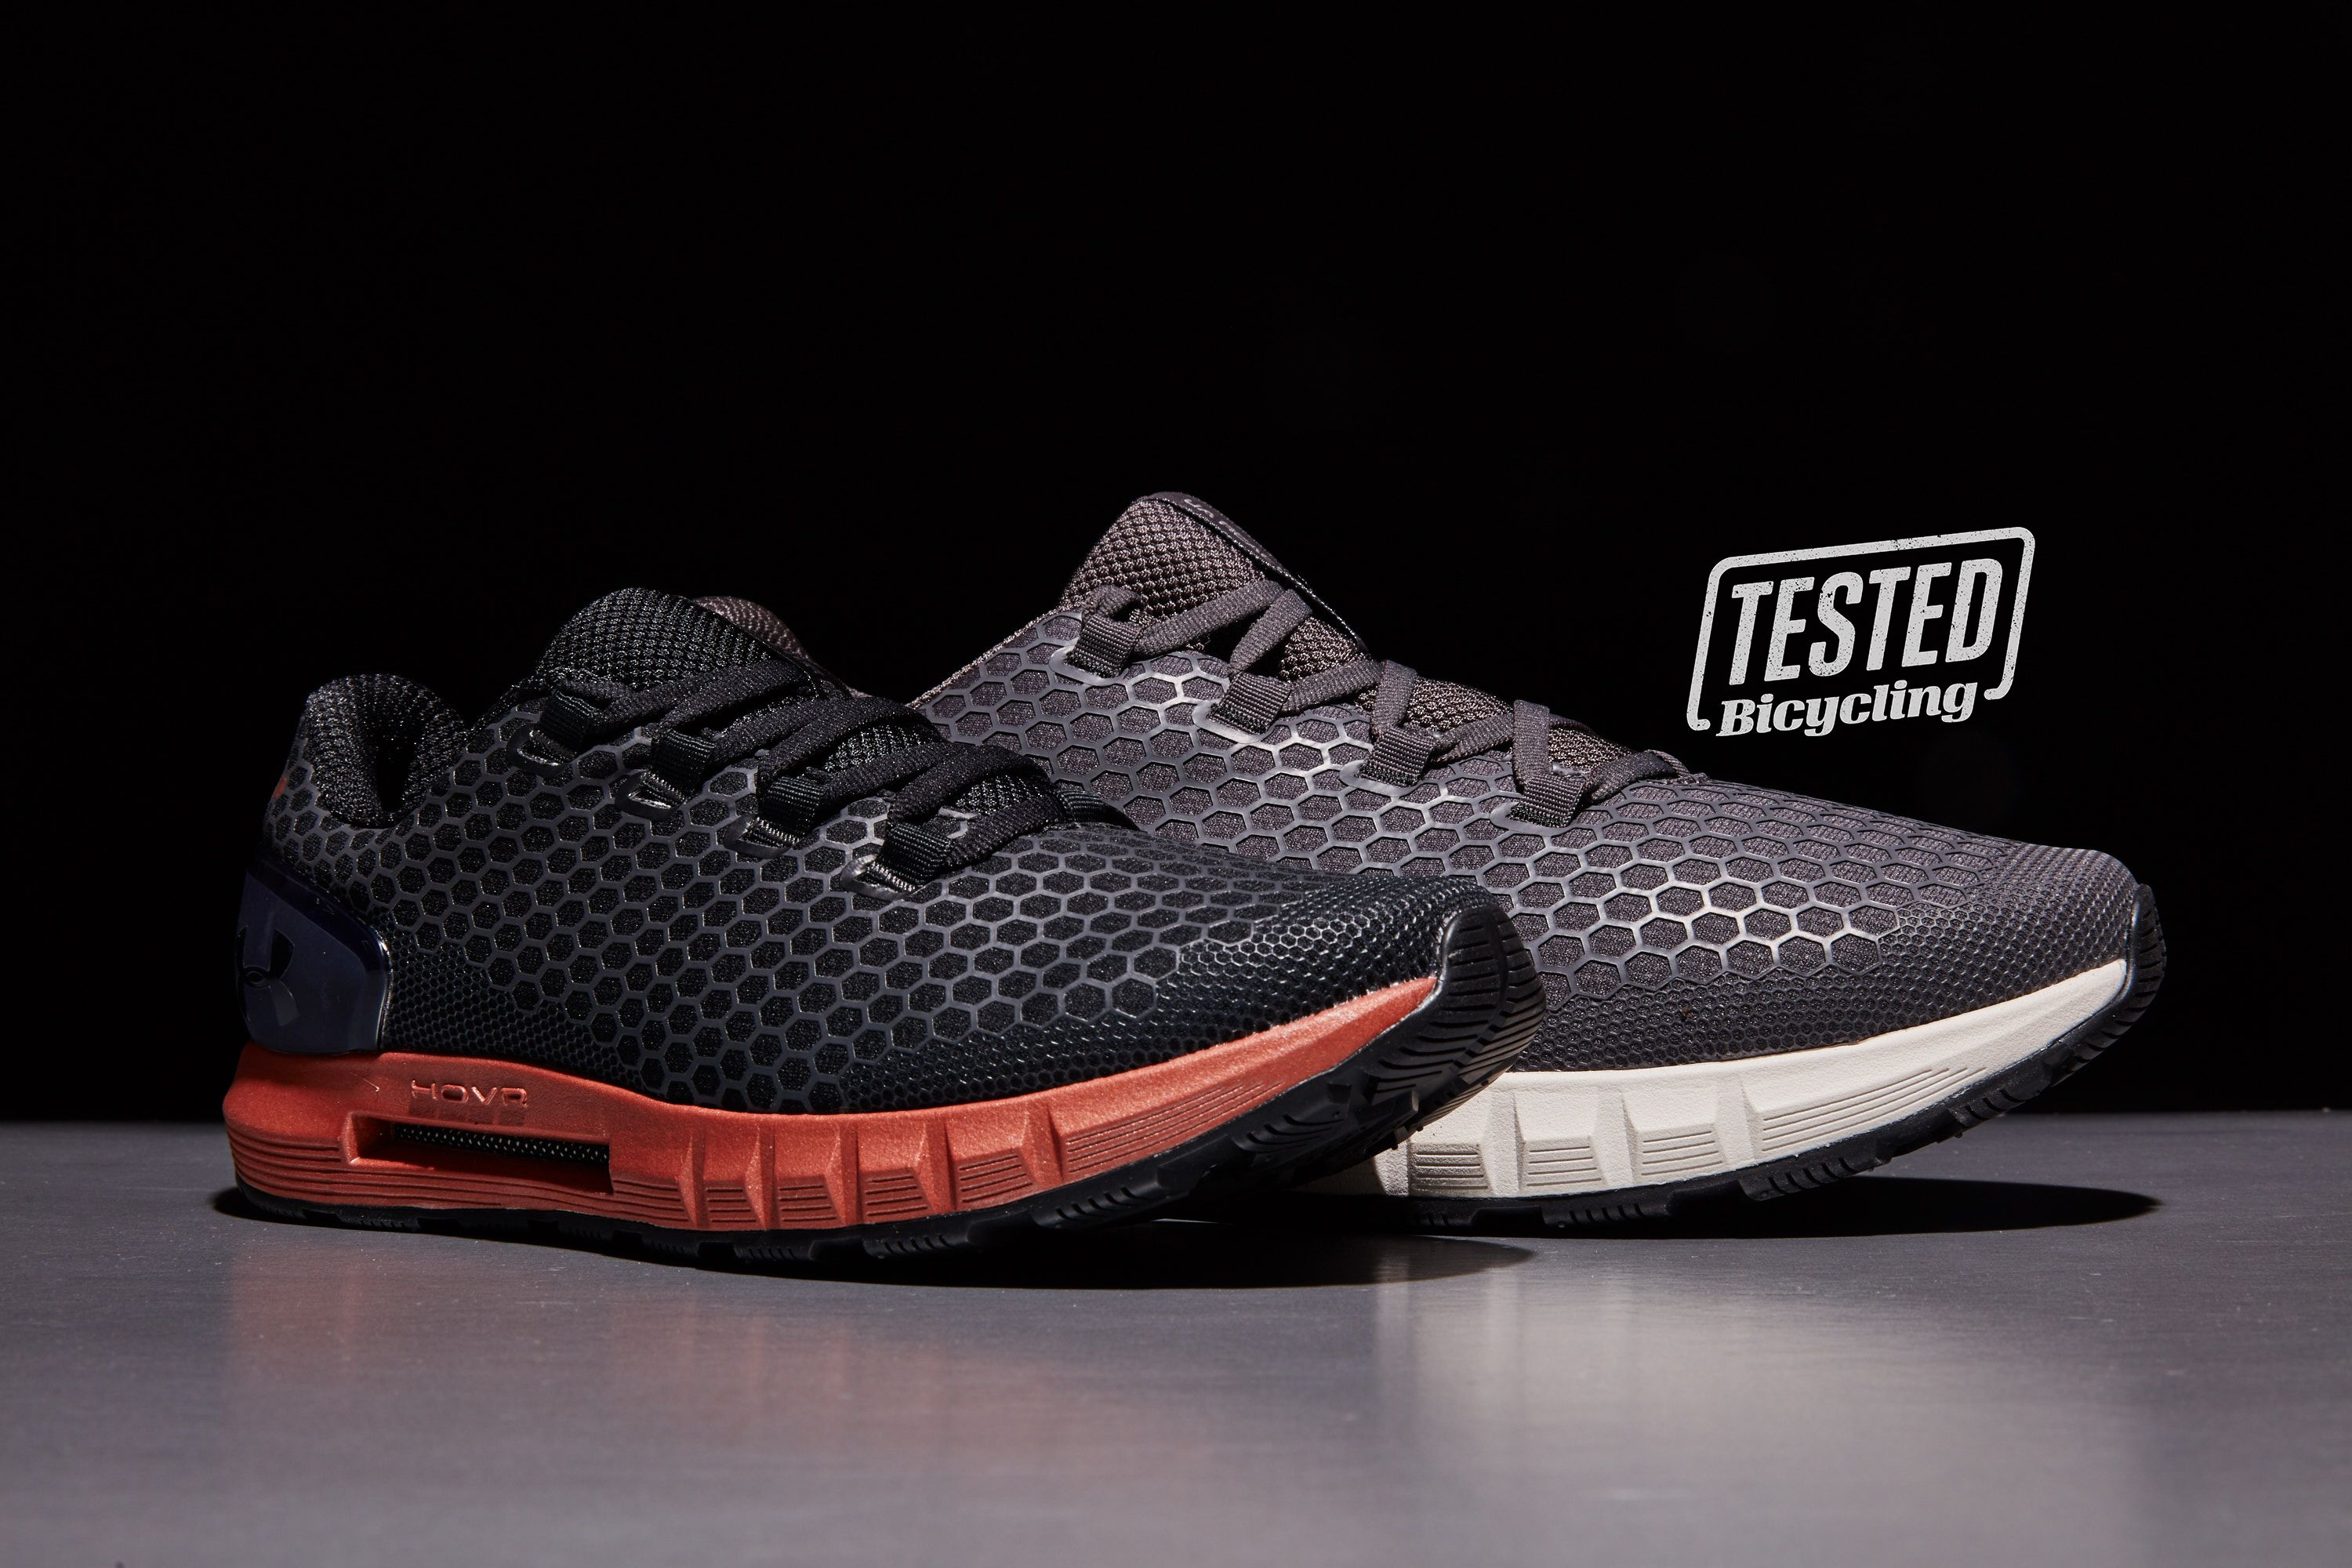 Under Armour Hovr CGR Connected Winter Running Shoes